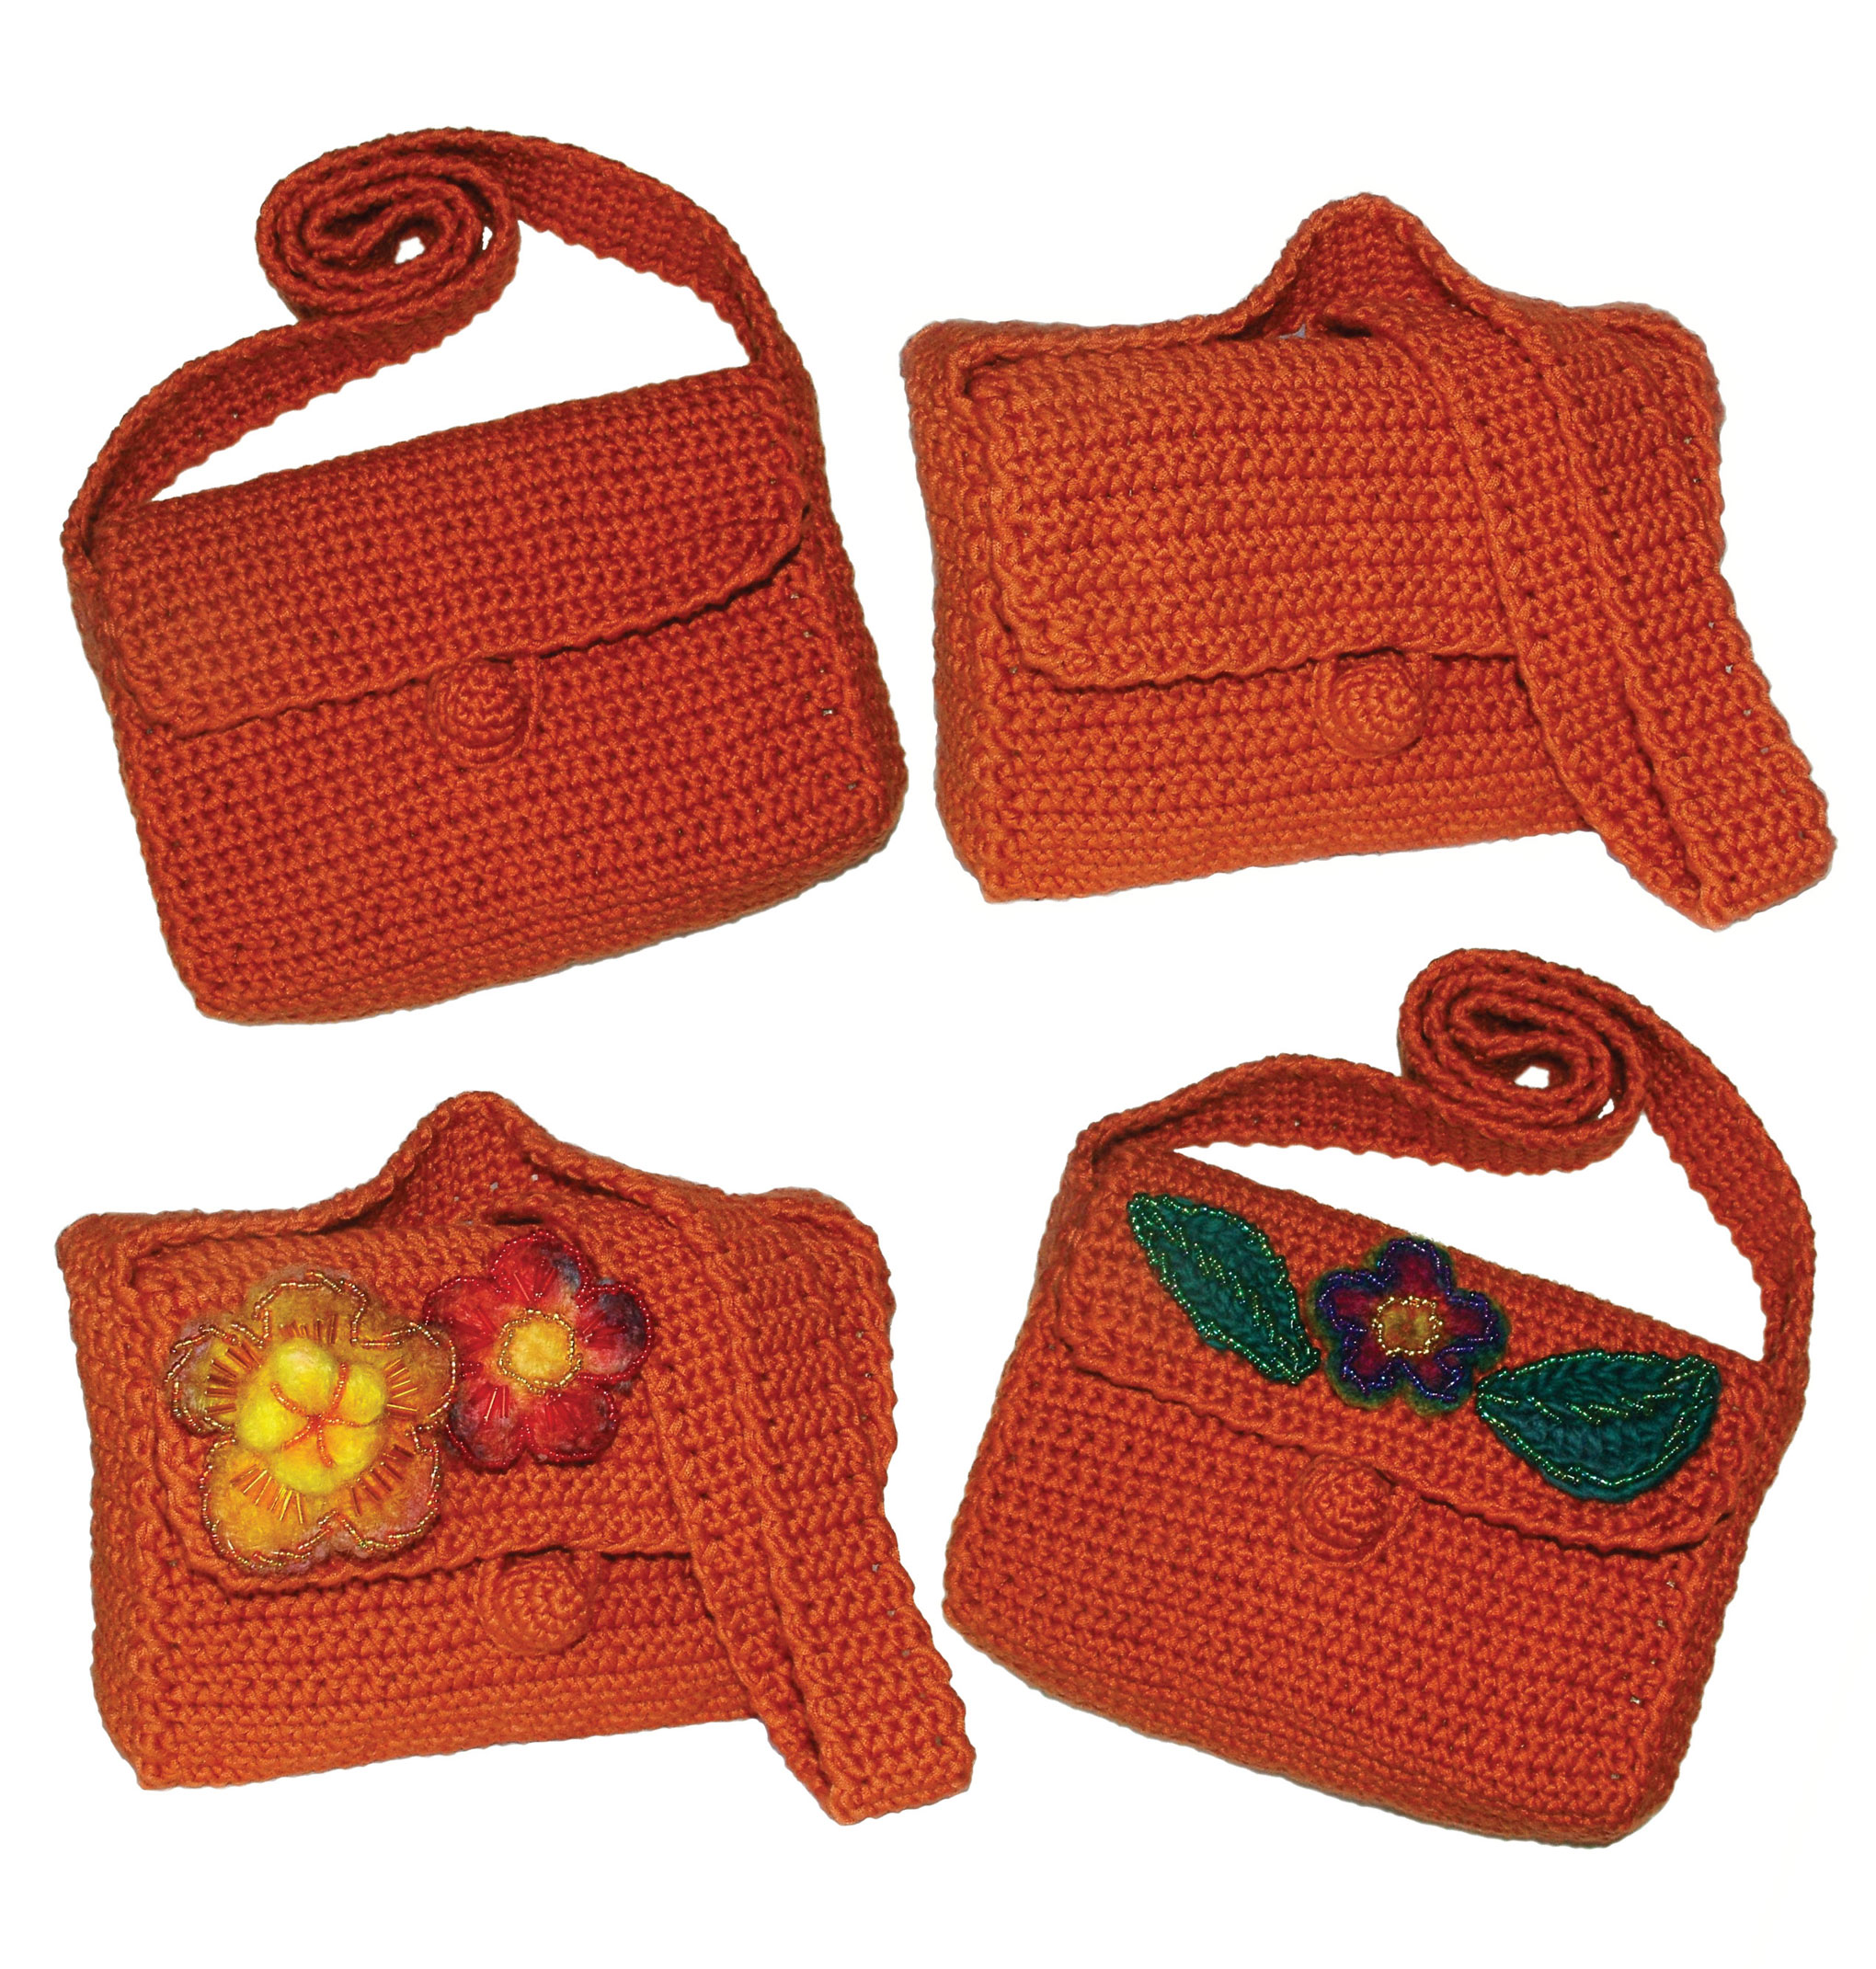 2 new crochet patterns to play with renate kirkpatricks 1 easy basic crochet bagpurse pattern bankloansurffo Choice Image